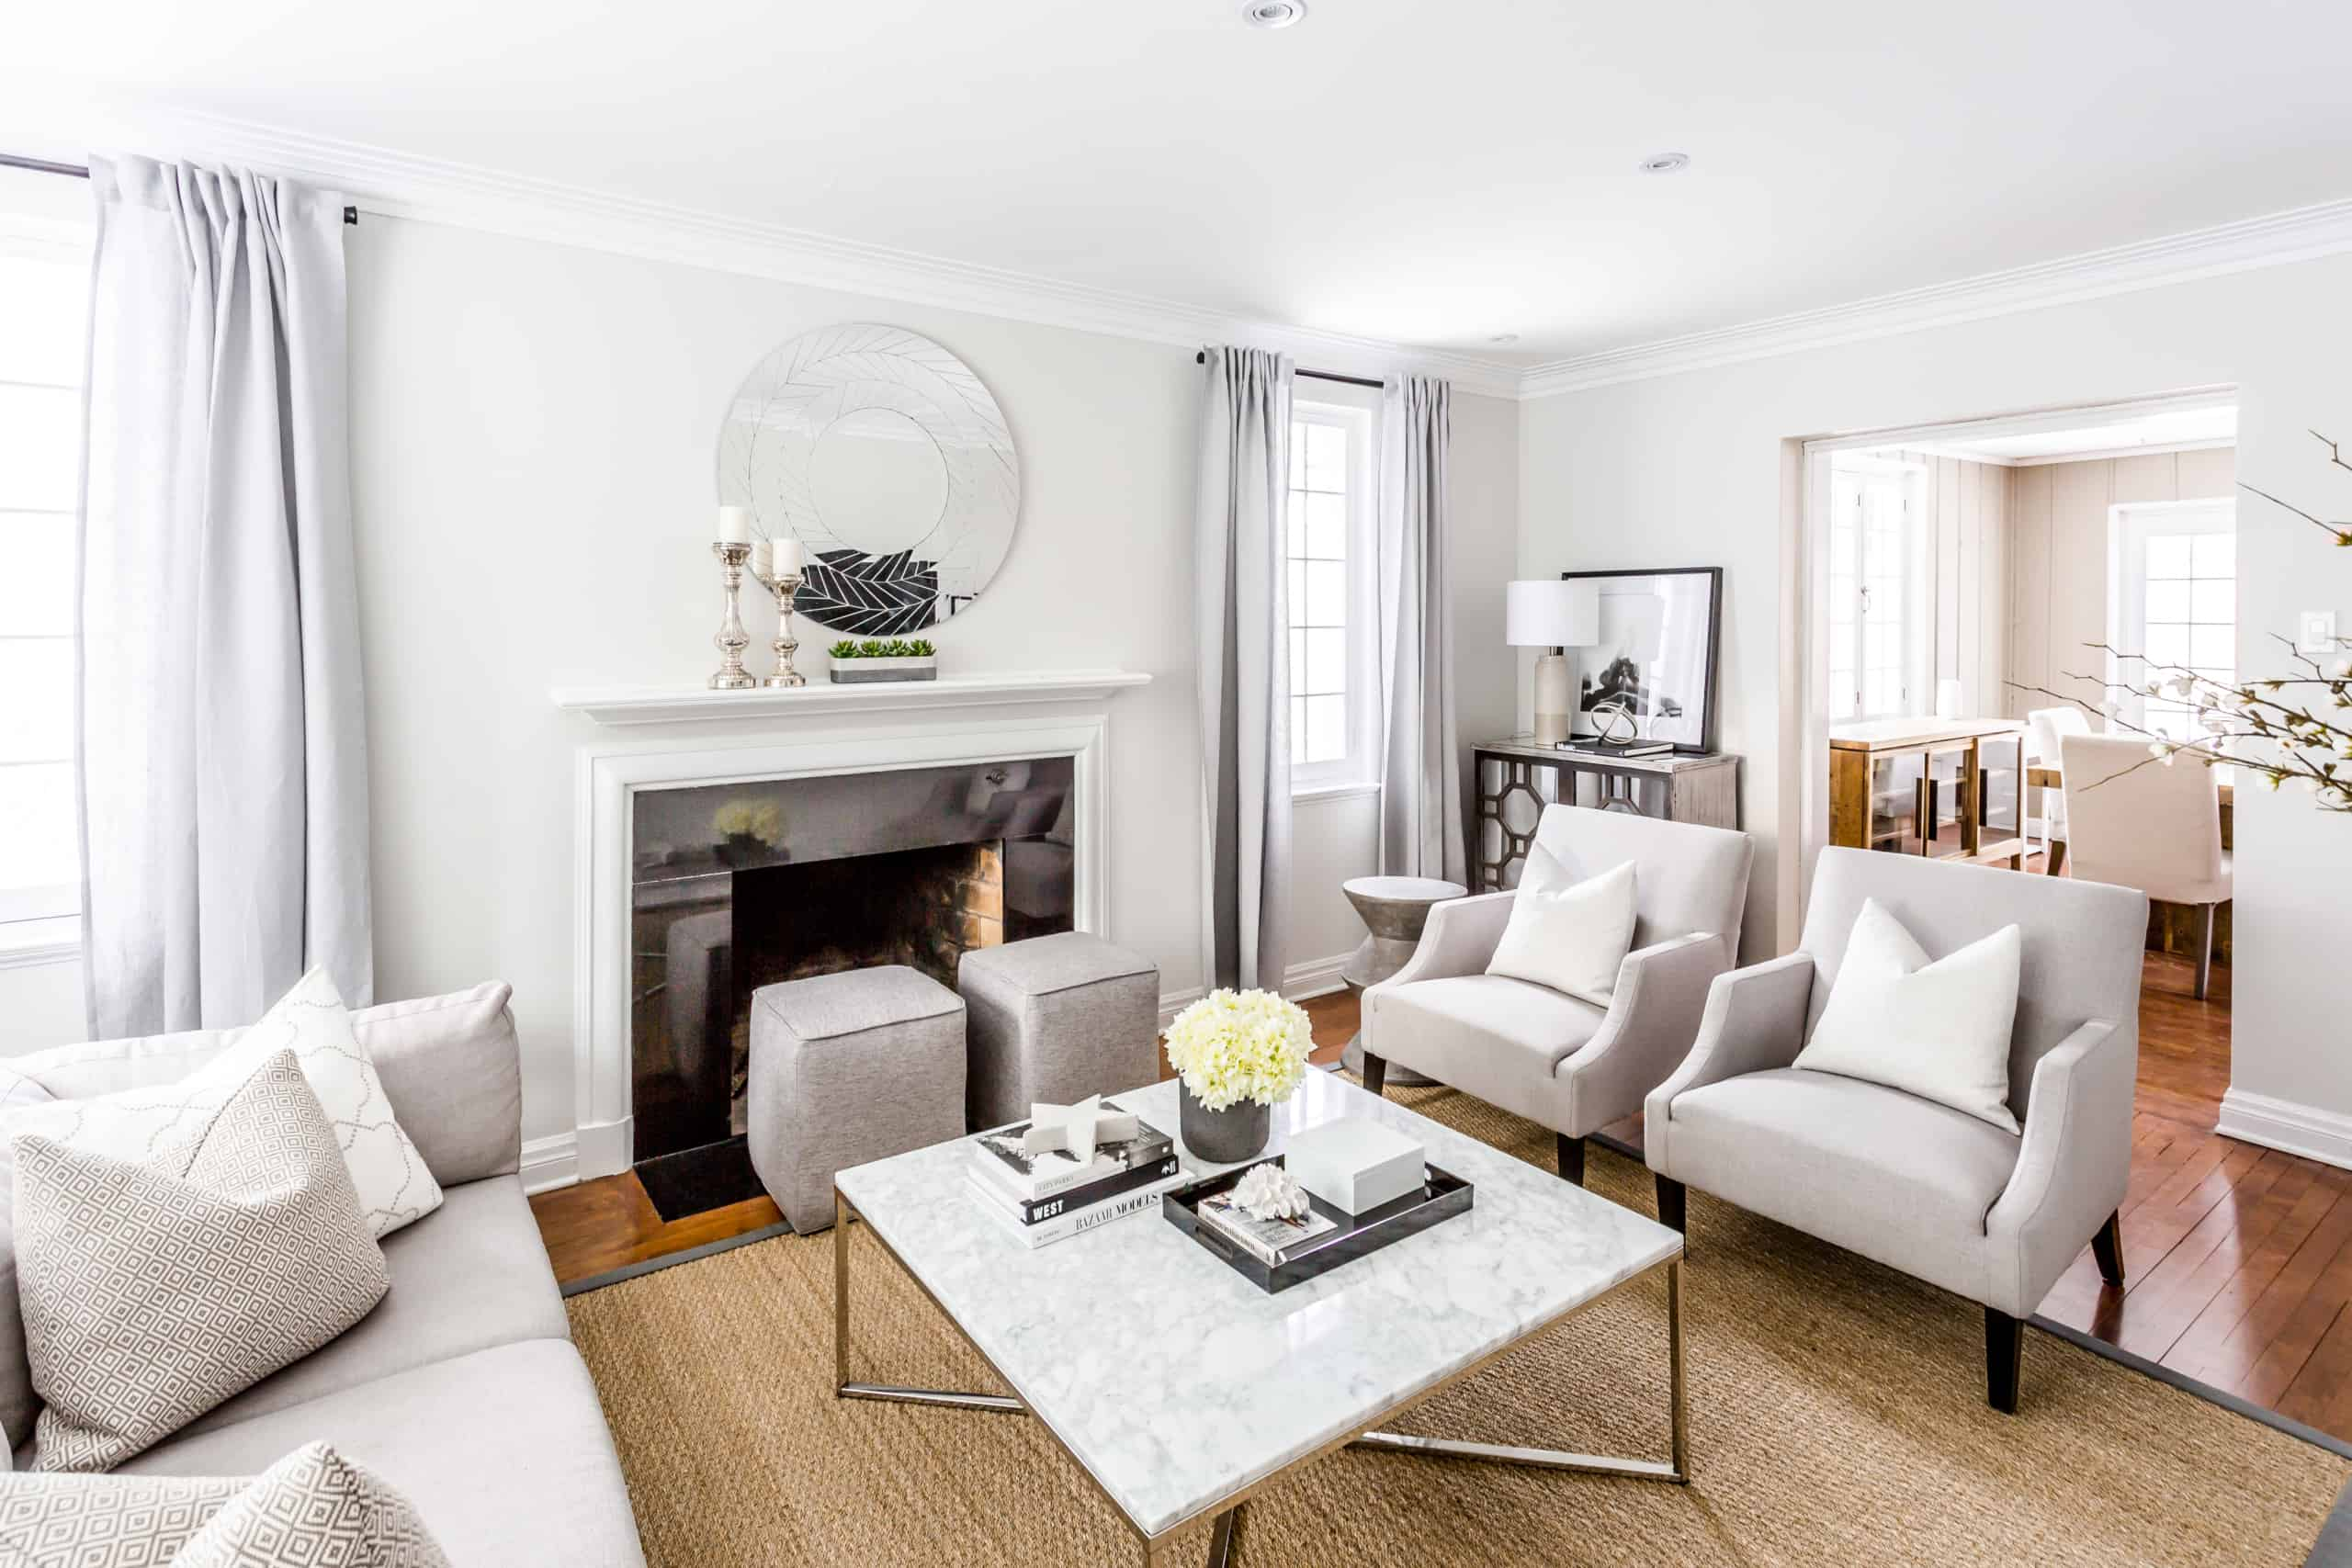 Large, open living room with a large, marble coffee table